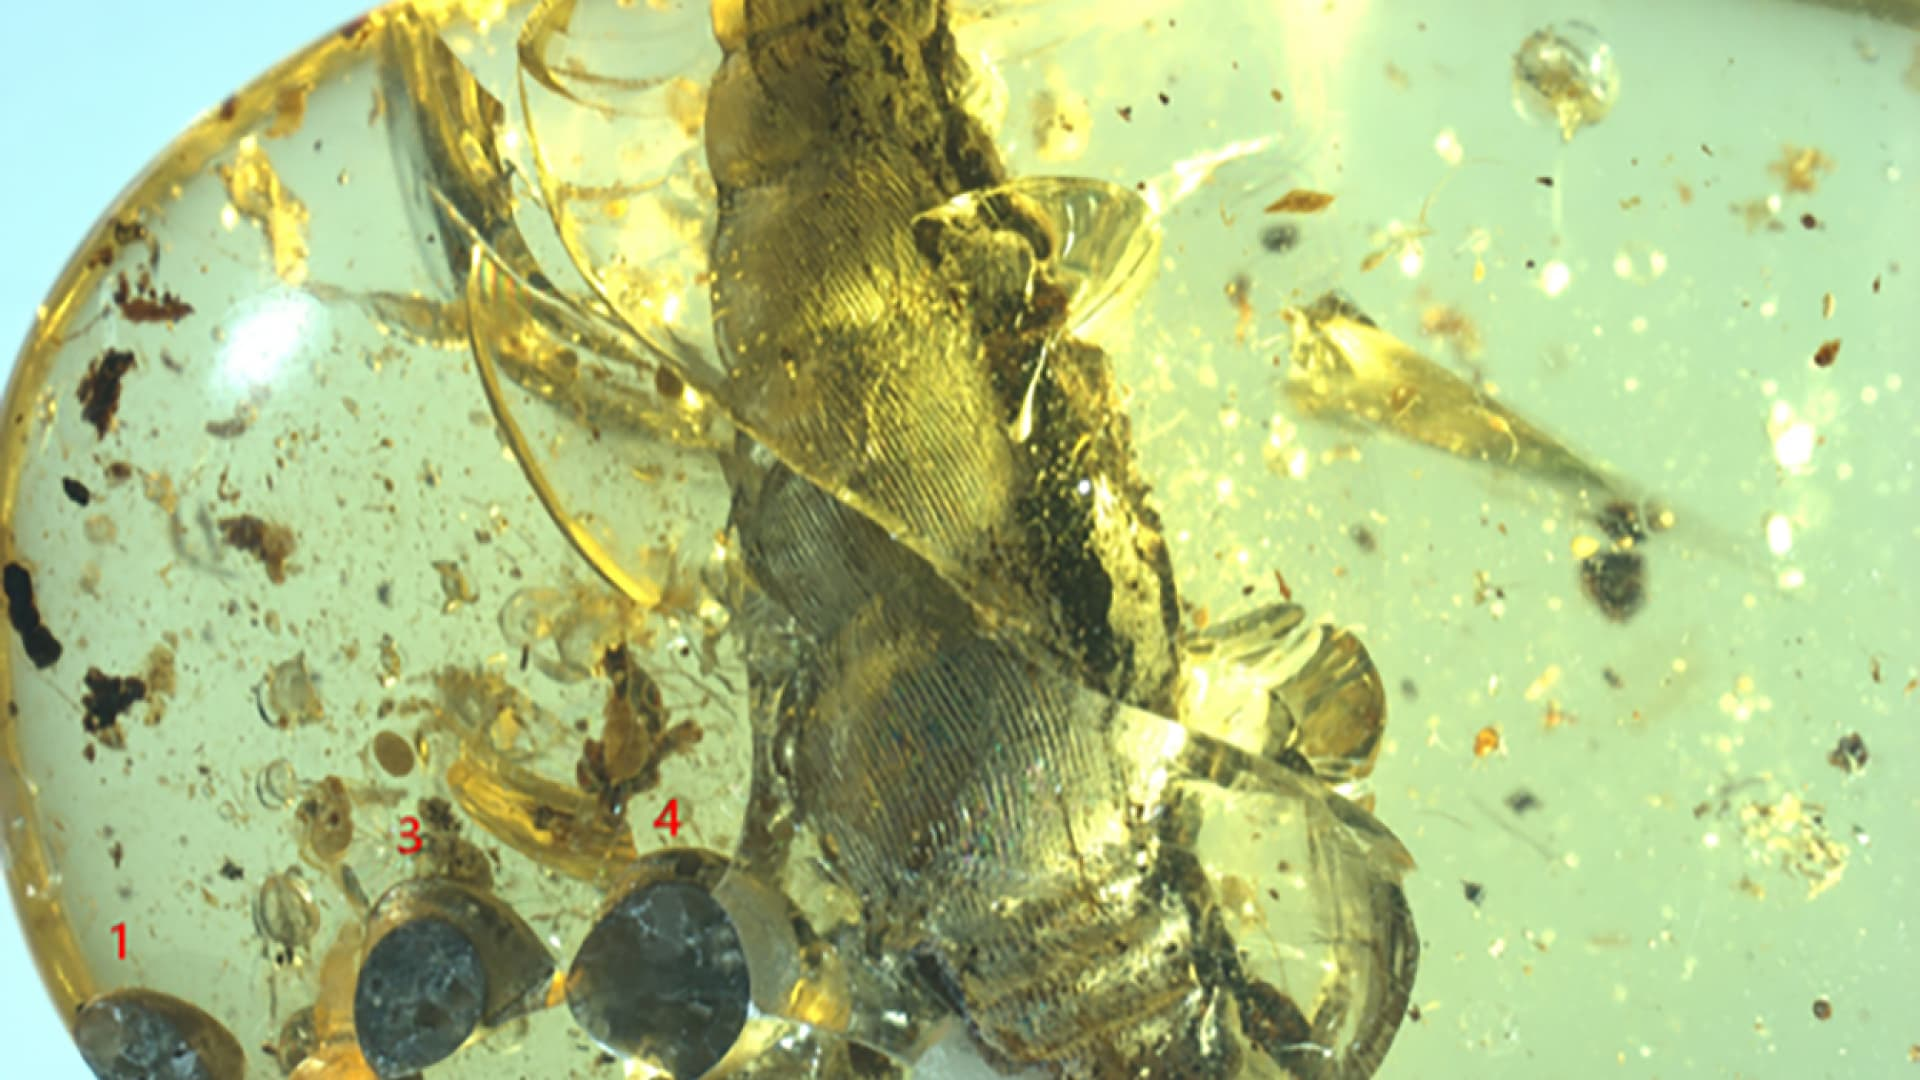 Cretaceous period: mother and infant snails preserved in amber